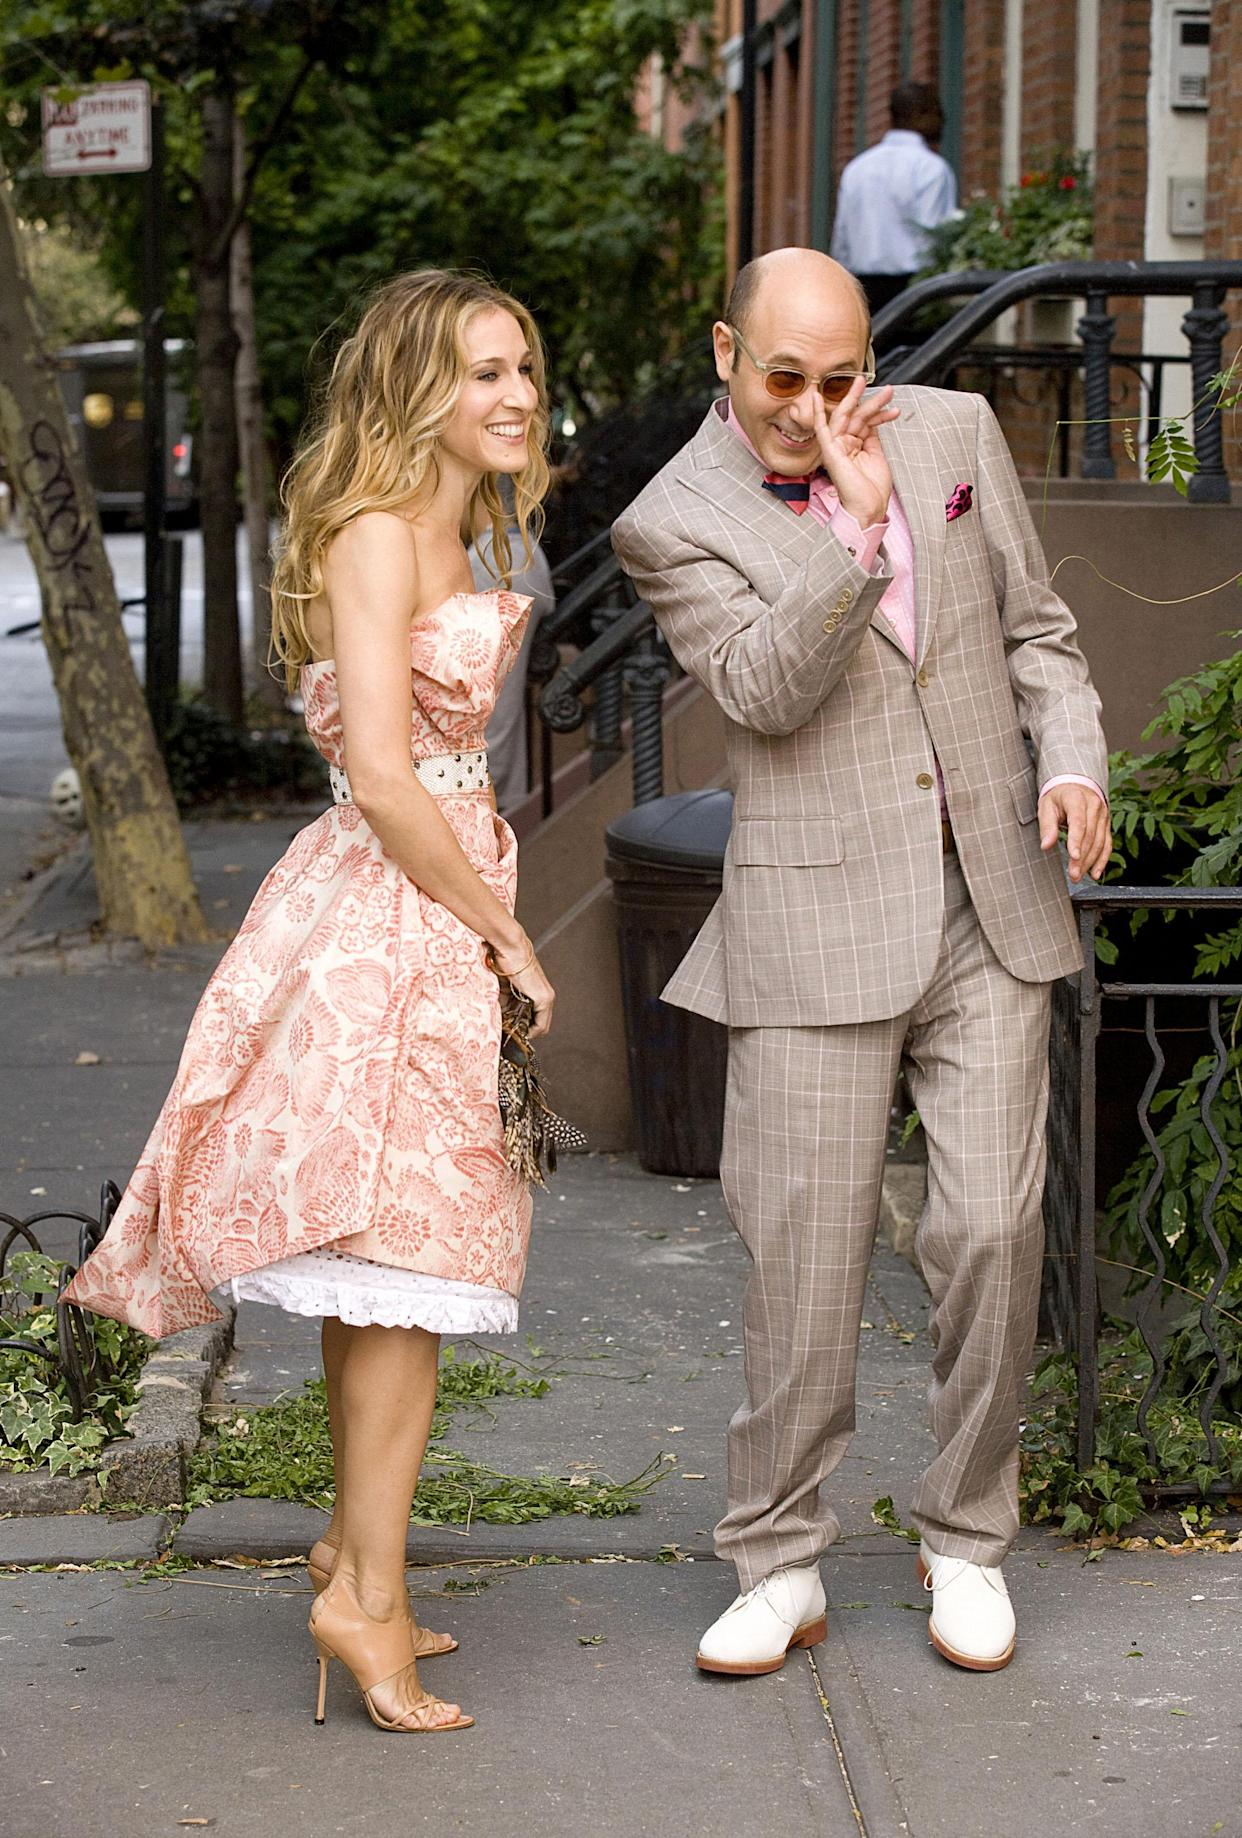 Sarah Jessica Parker and Willie Garson appear in the